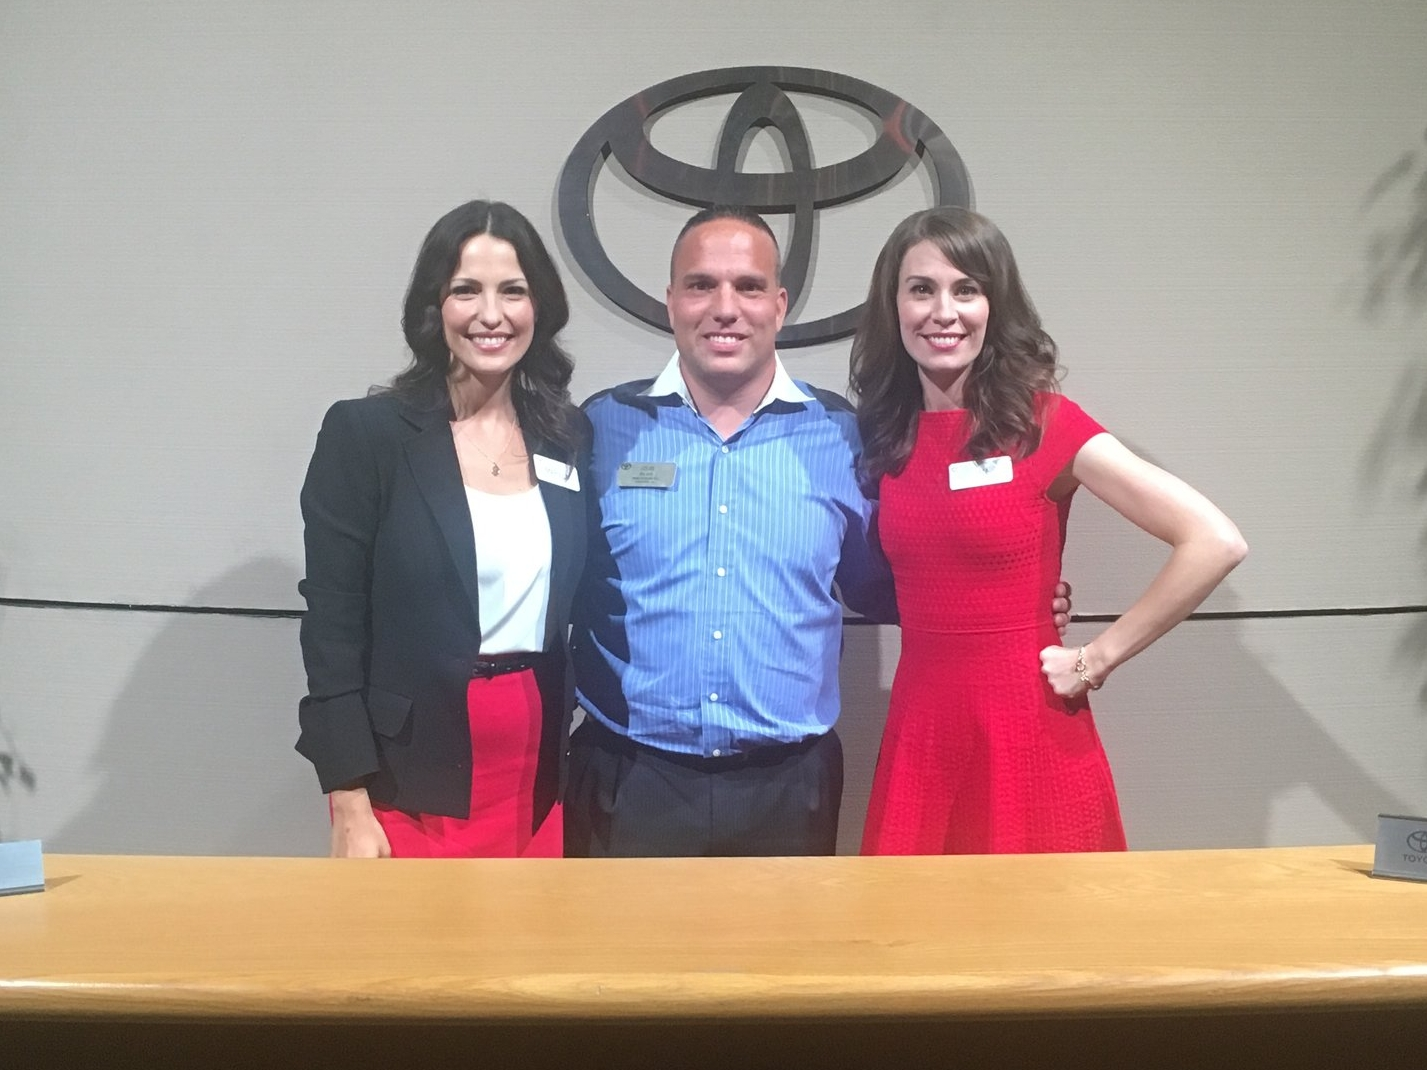 Pictured above is Louis Rylant with Jan and Mariela, Toyota USA spokeswomen at a dealer event.